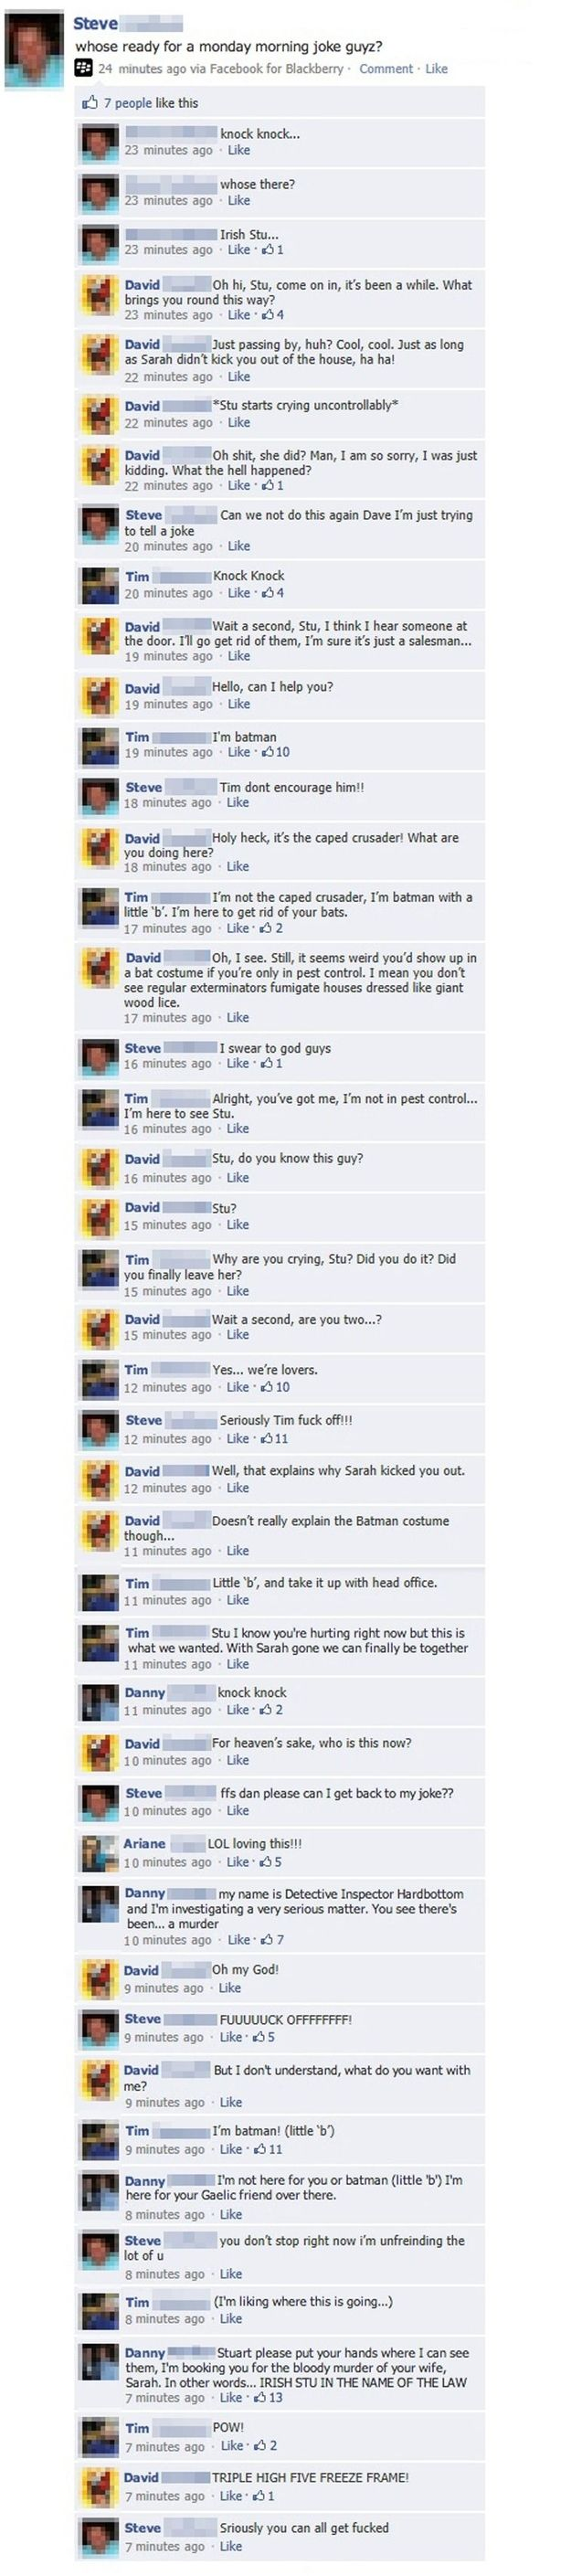 Possibly The Best And Most Convoluted Knock Knock Joke Ever -- If only all Facebook comment threads were like this.